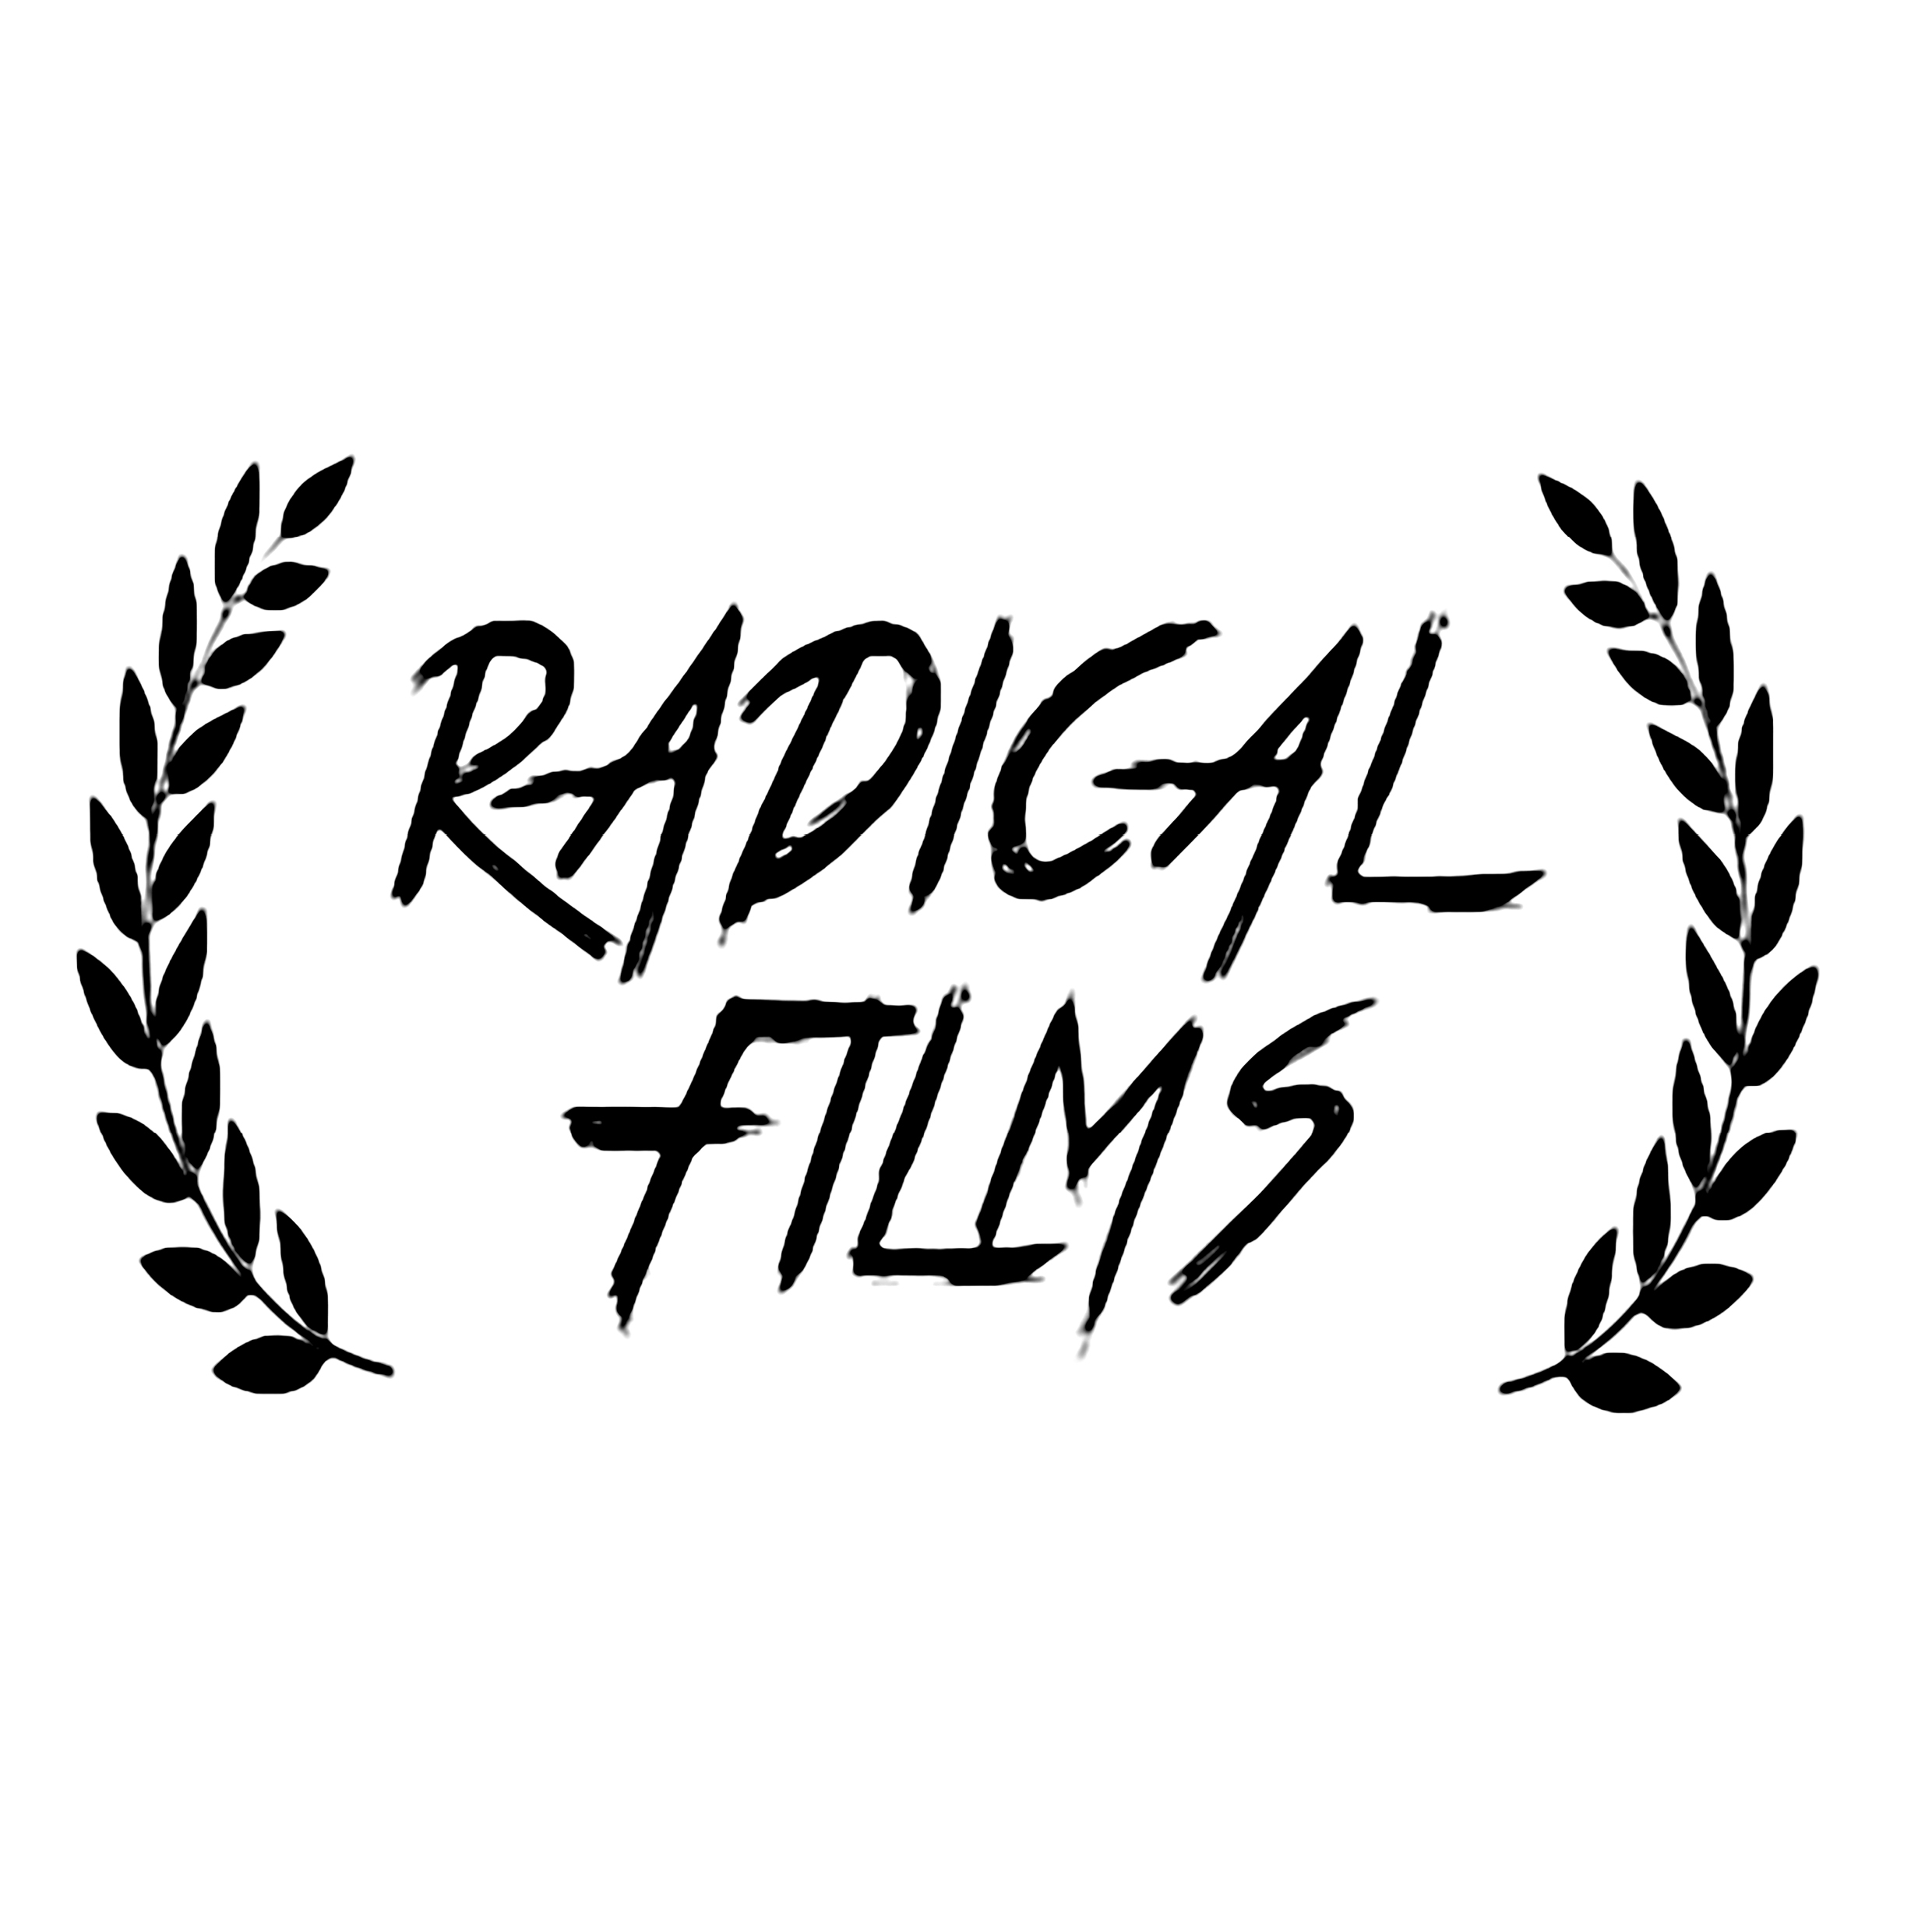 Copy of Radical Films